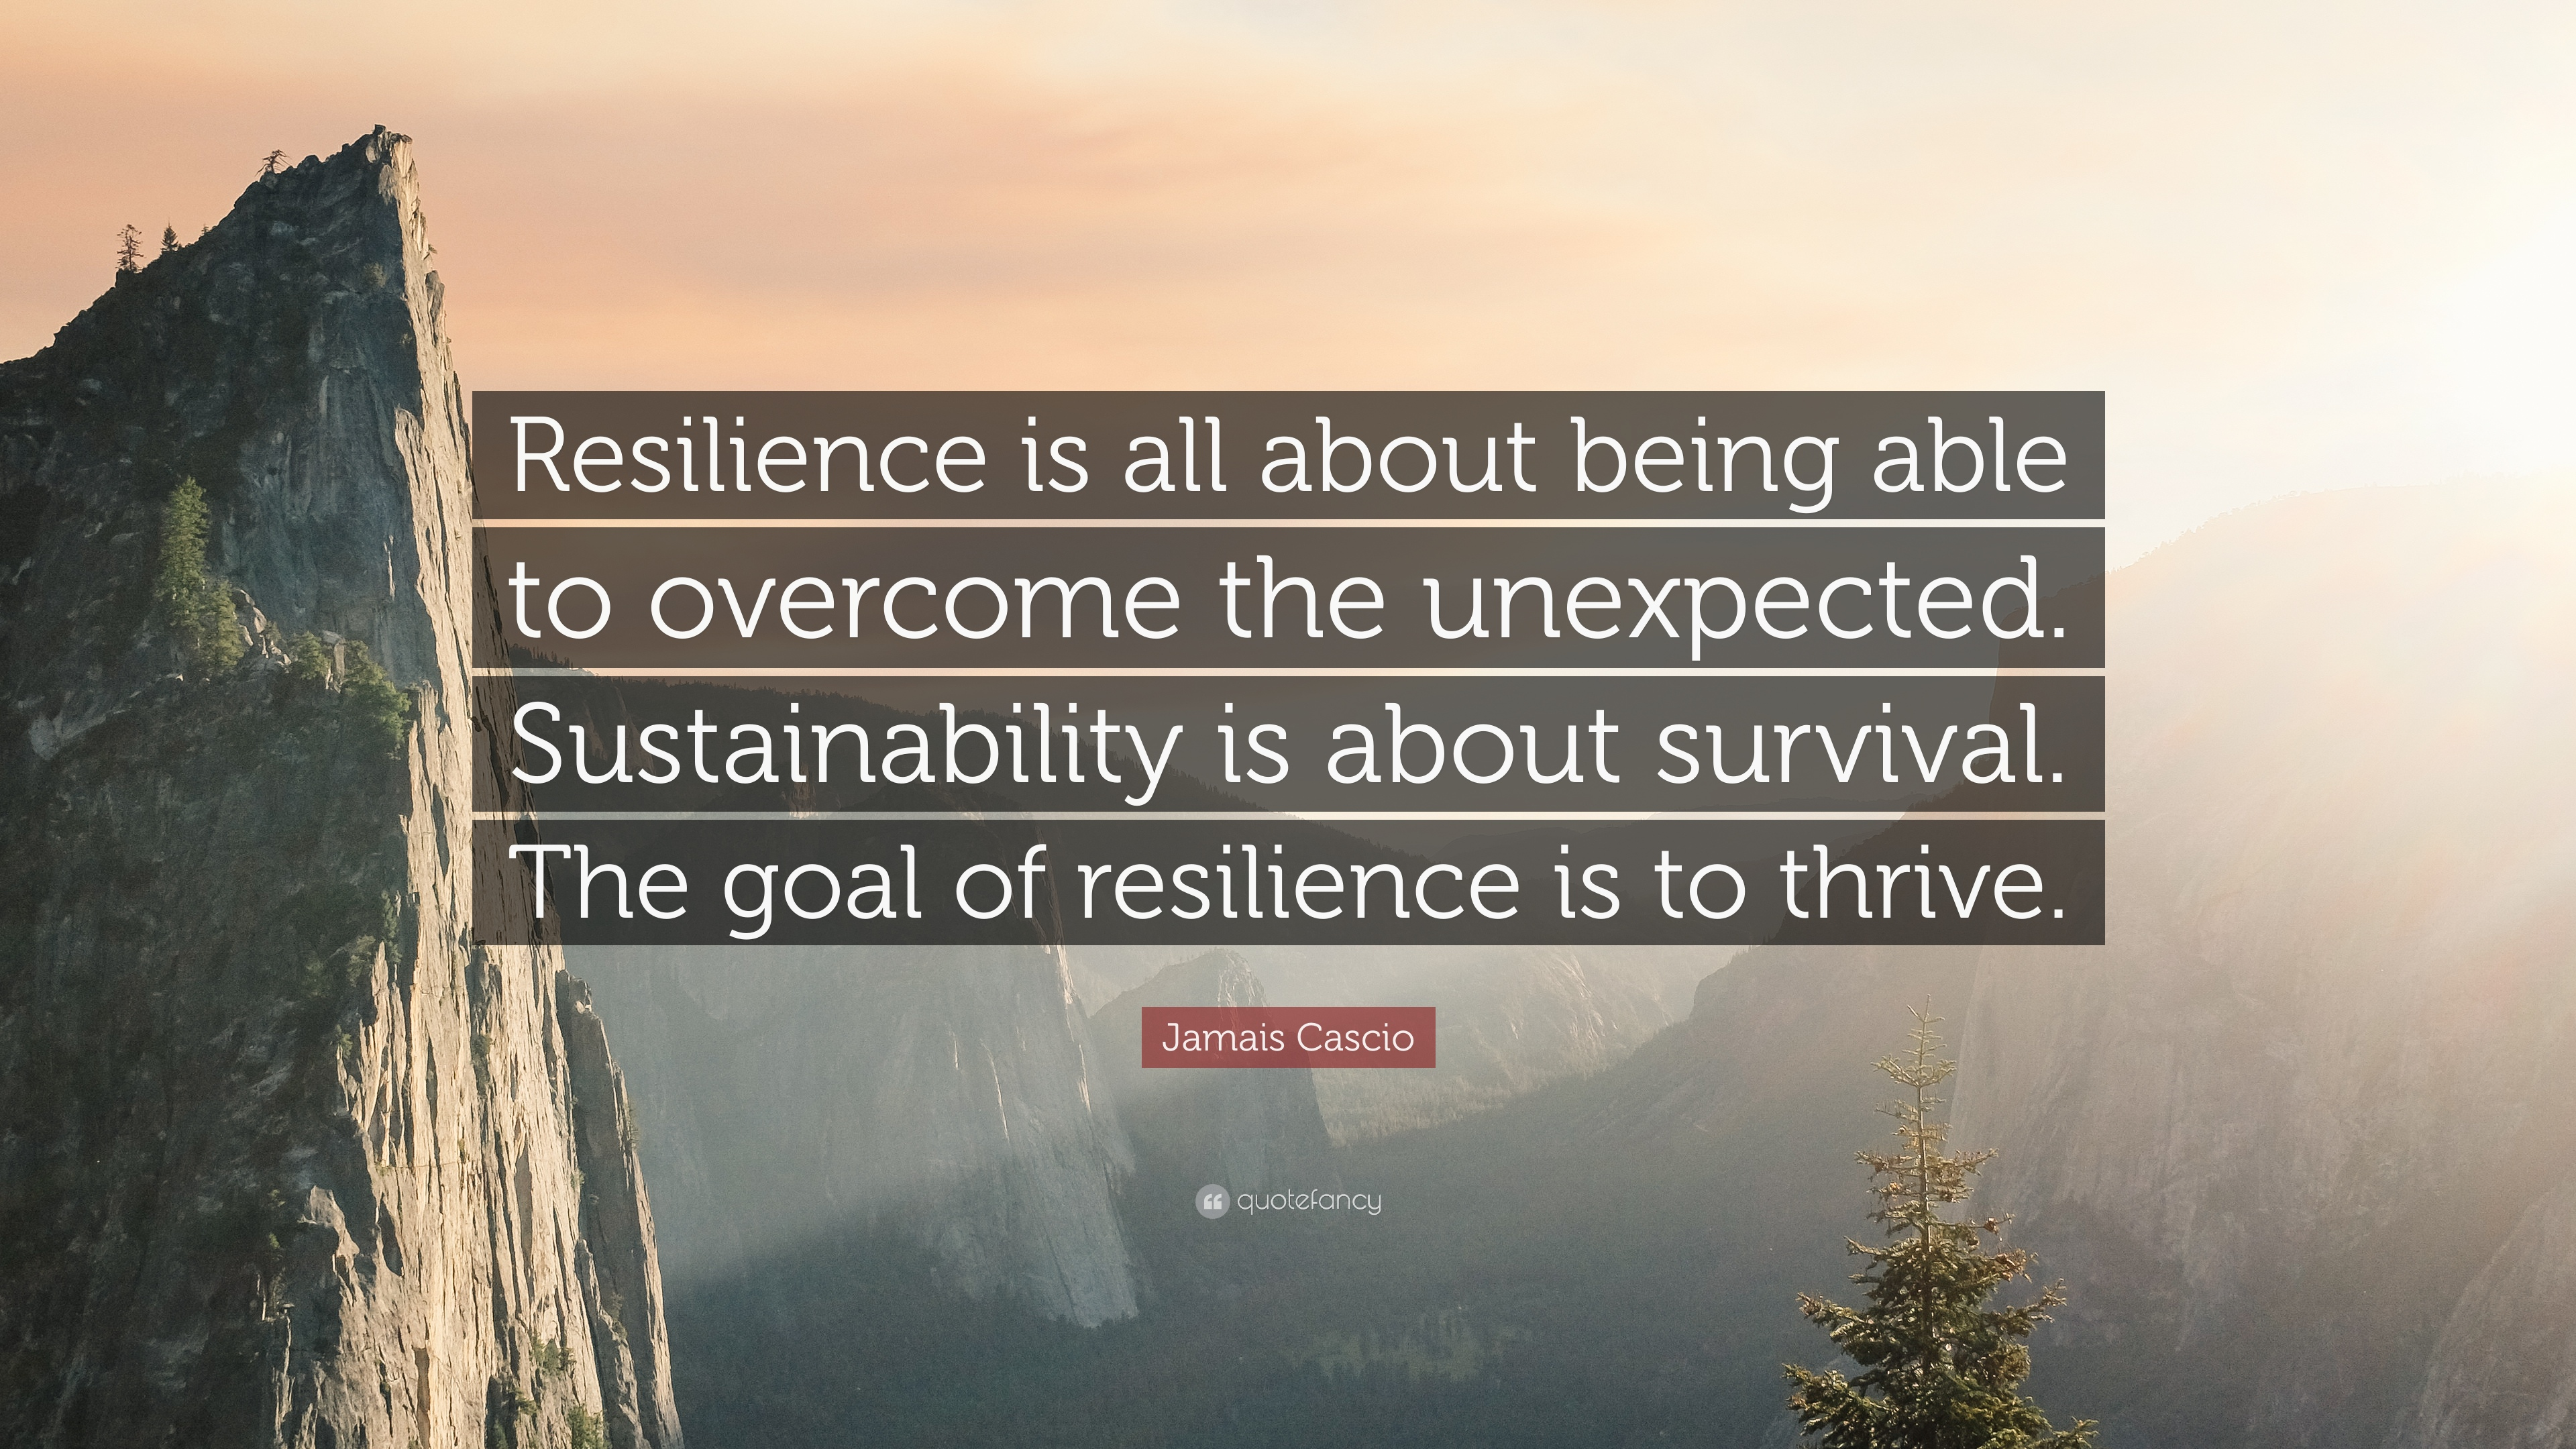 Resilience Quotes | Jamais Cascio Quote Resilience Is All About Being Able To Overcome